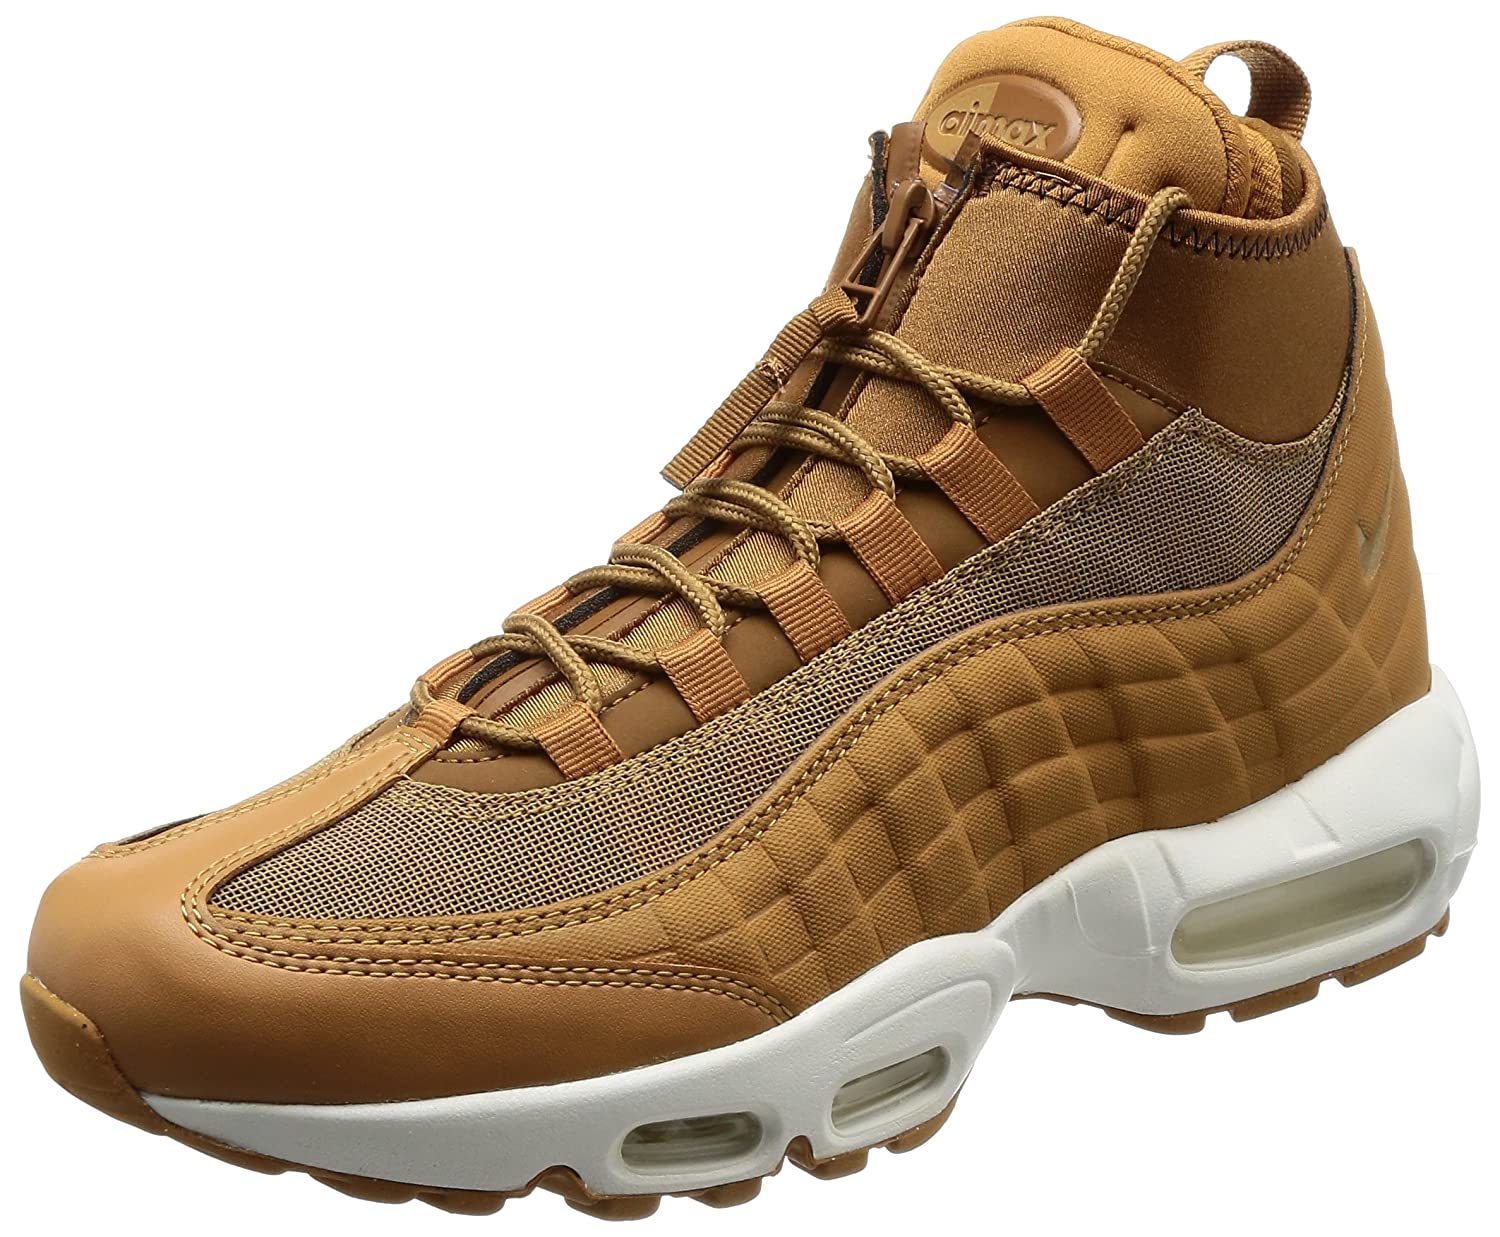 huge selection of 7e8fa 95437 Nike Men's Air Max 95 Sneakerboot Running Shoes